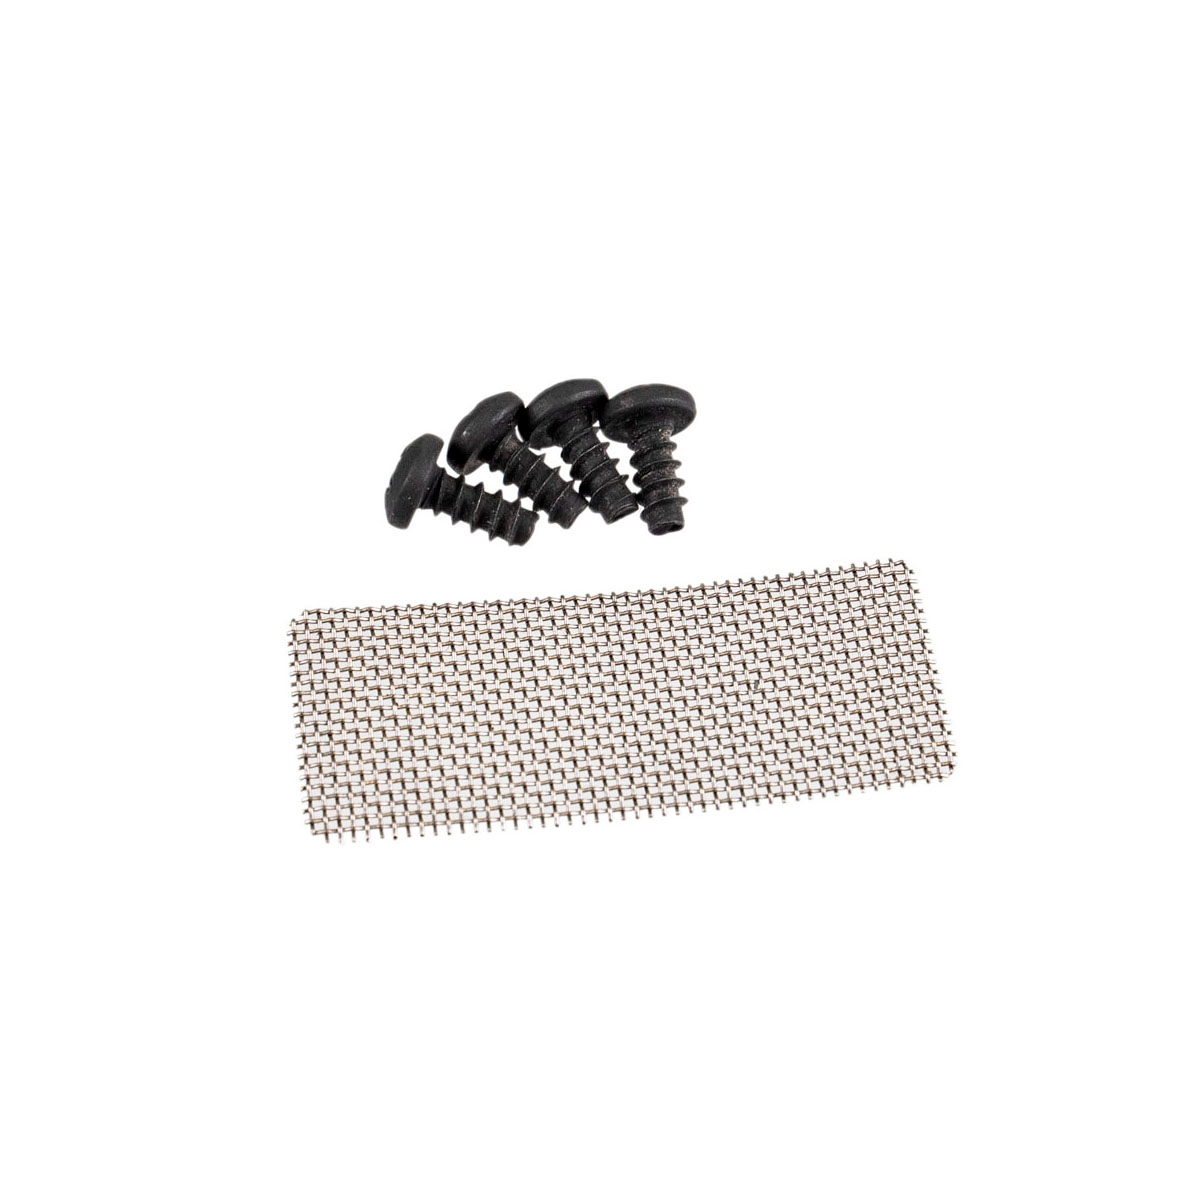 Husqvarna Kit Spark Arrestor Screen 545030501